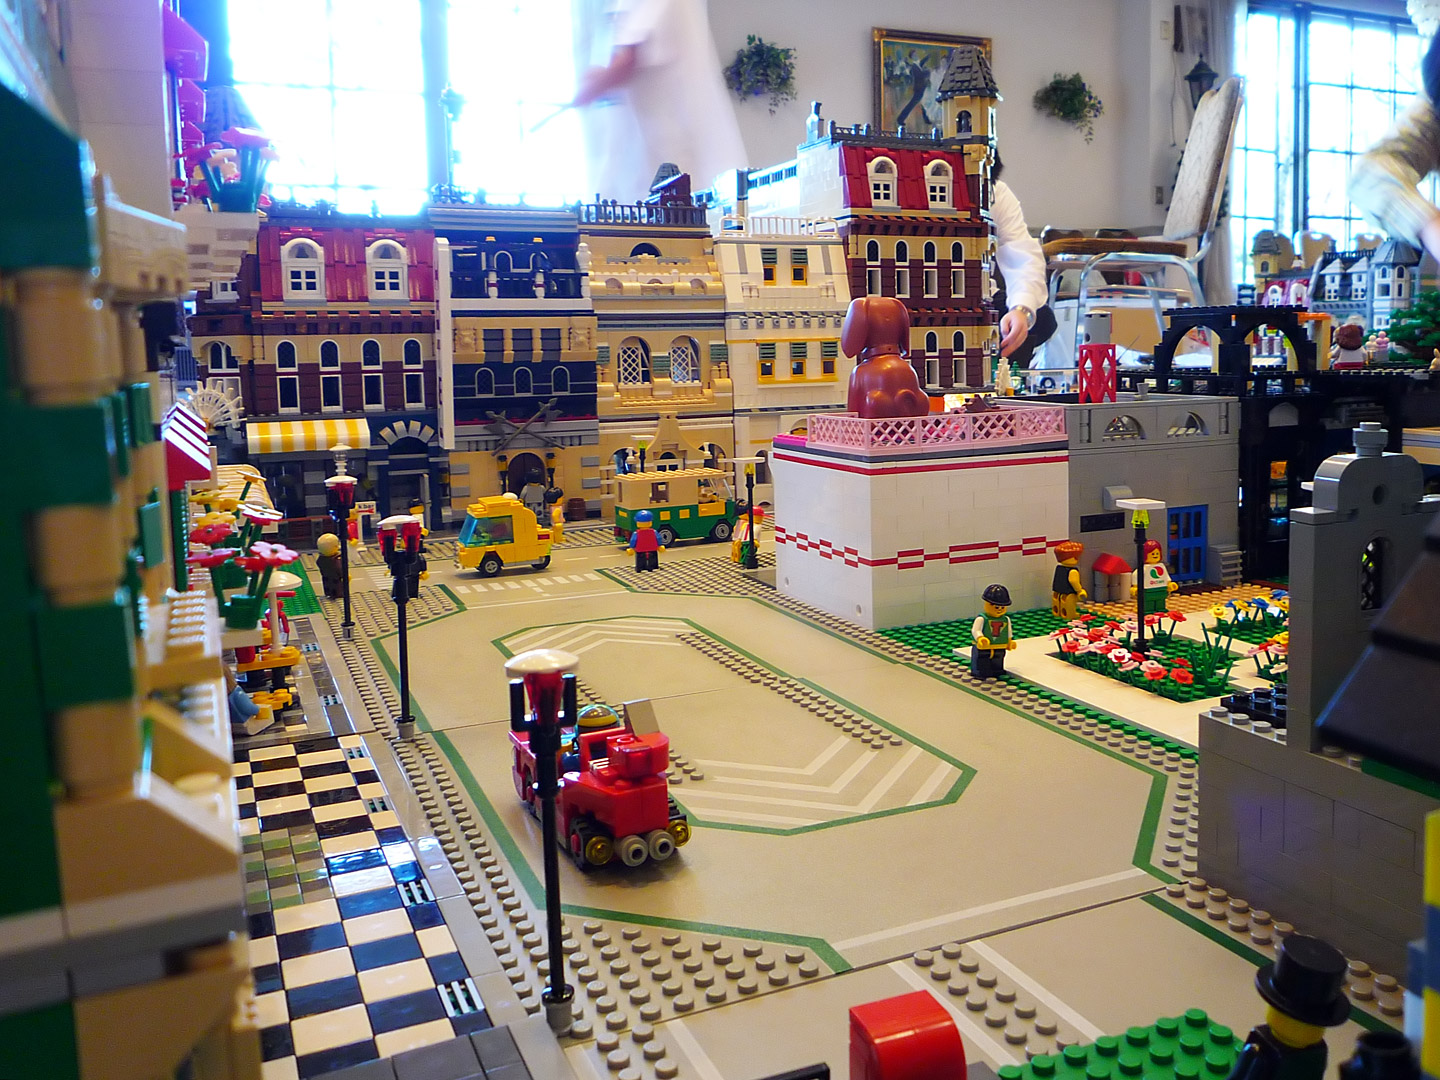 all_church-street_edge_01.jpg